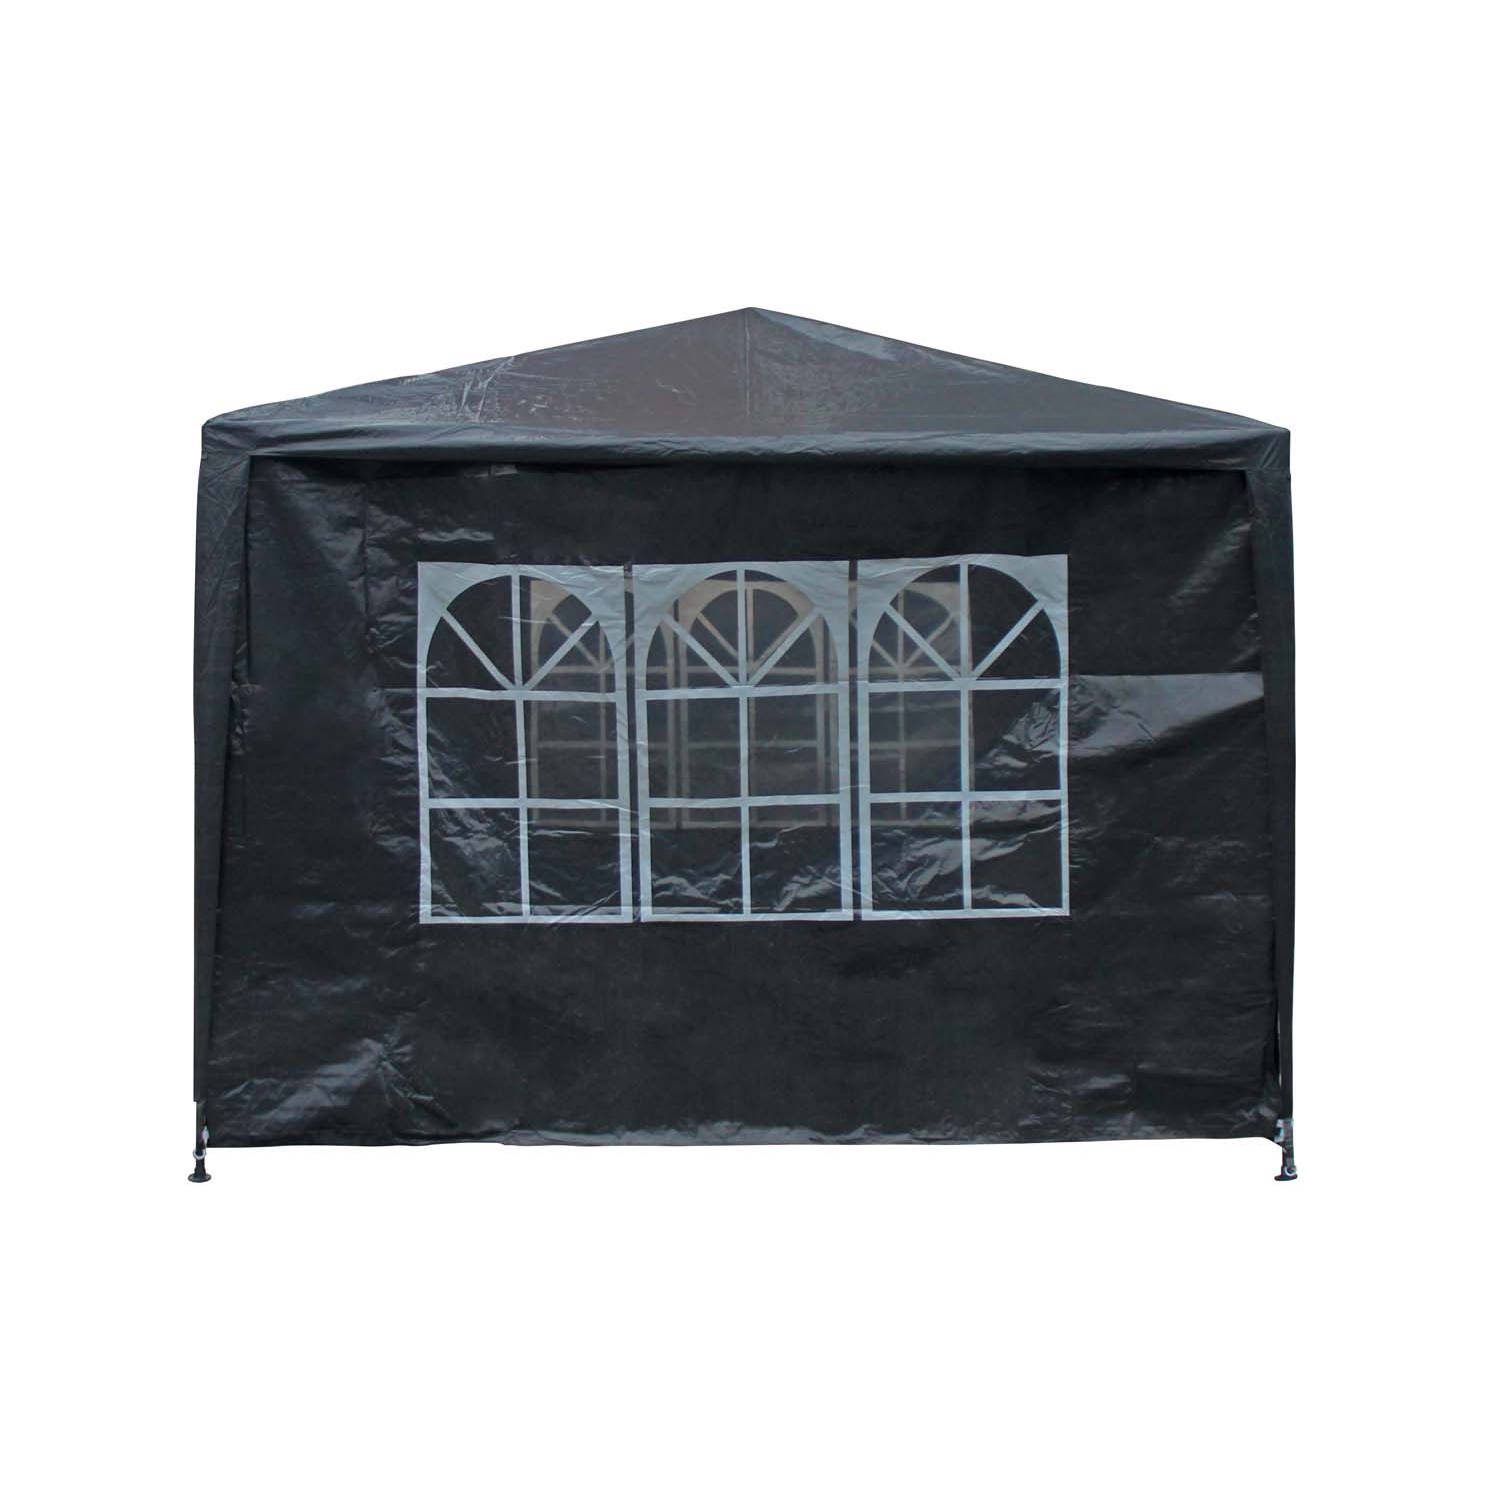 Royal Patio partytent Mani incl. 4 zijwanden